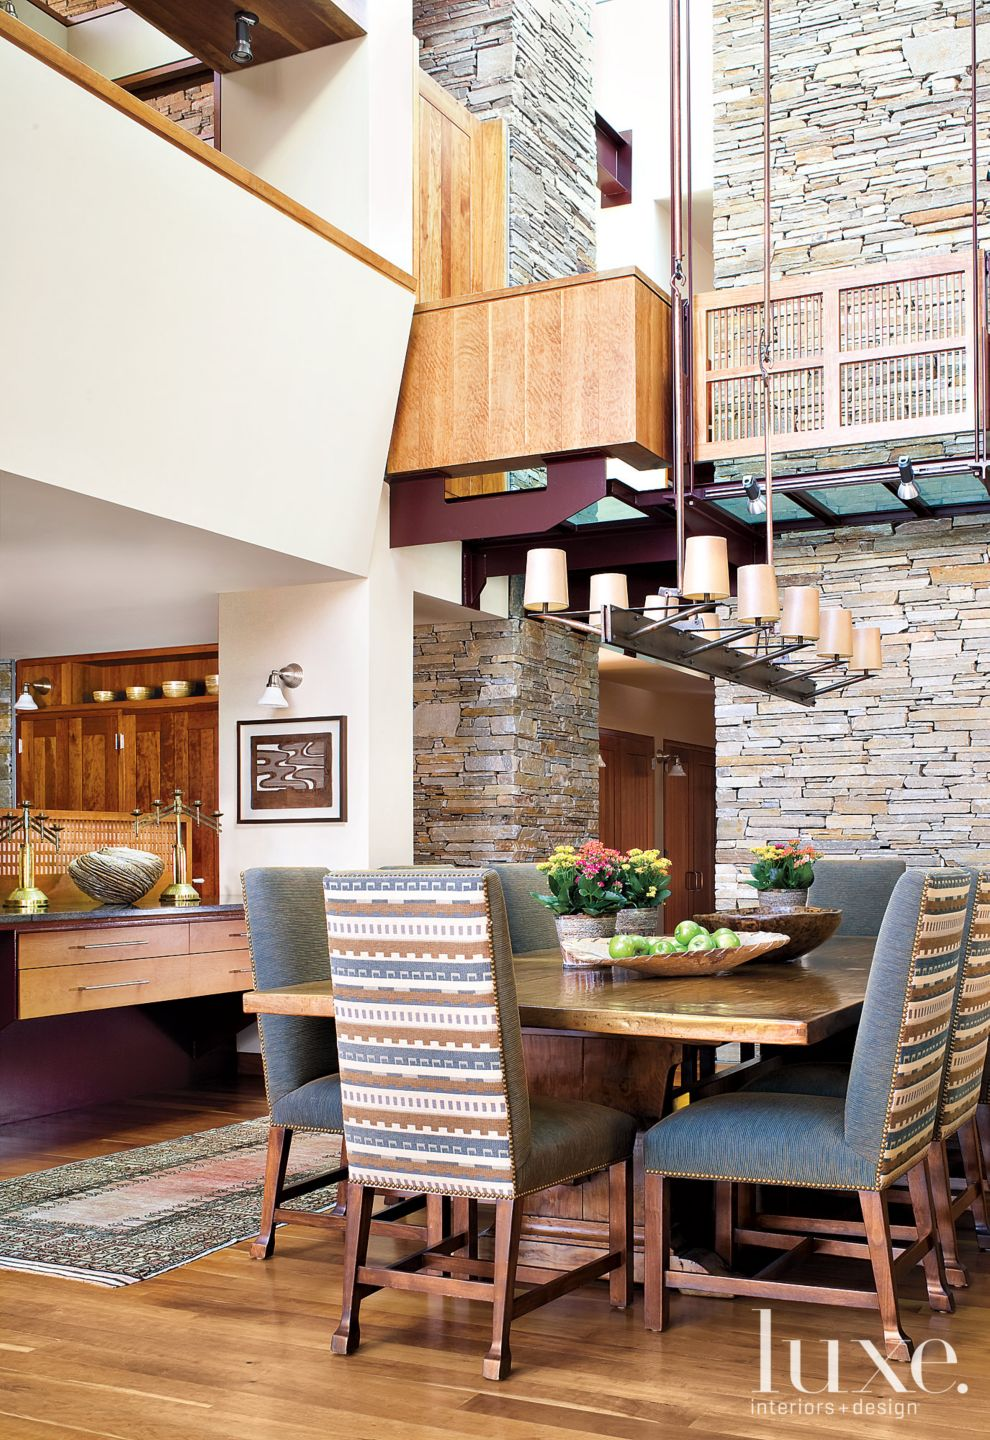 White Mountain Dining Room with Patterned Chairs